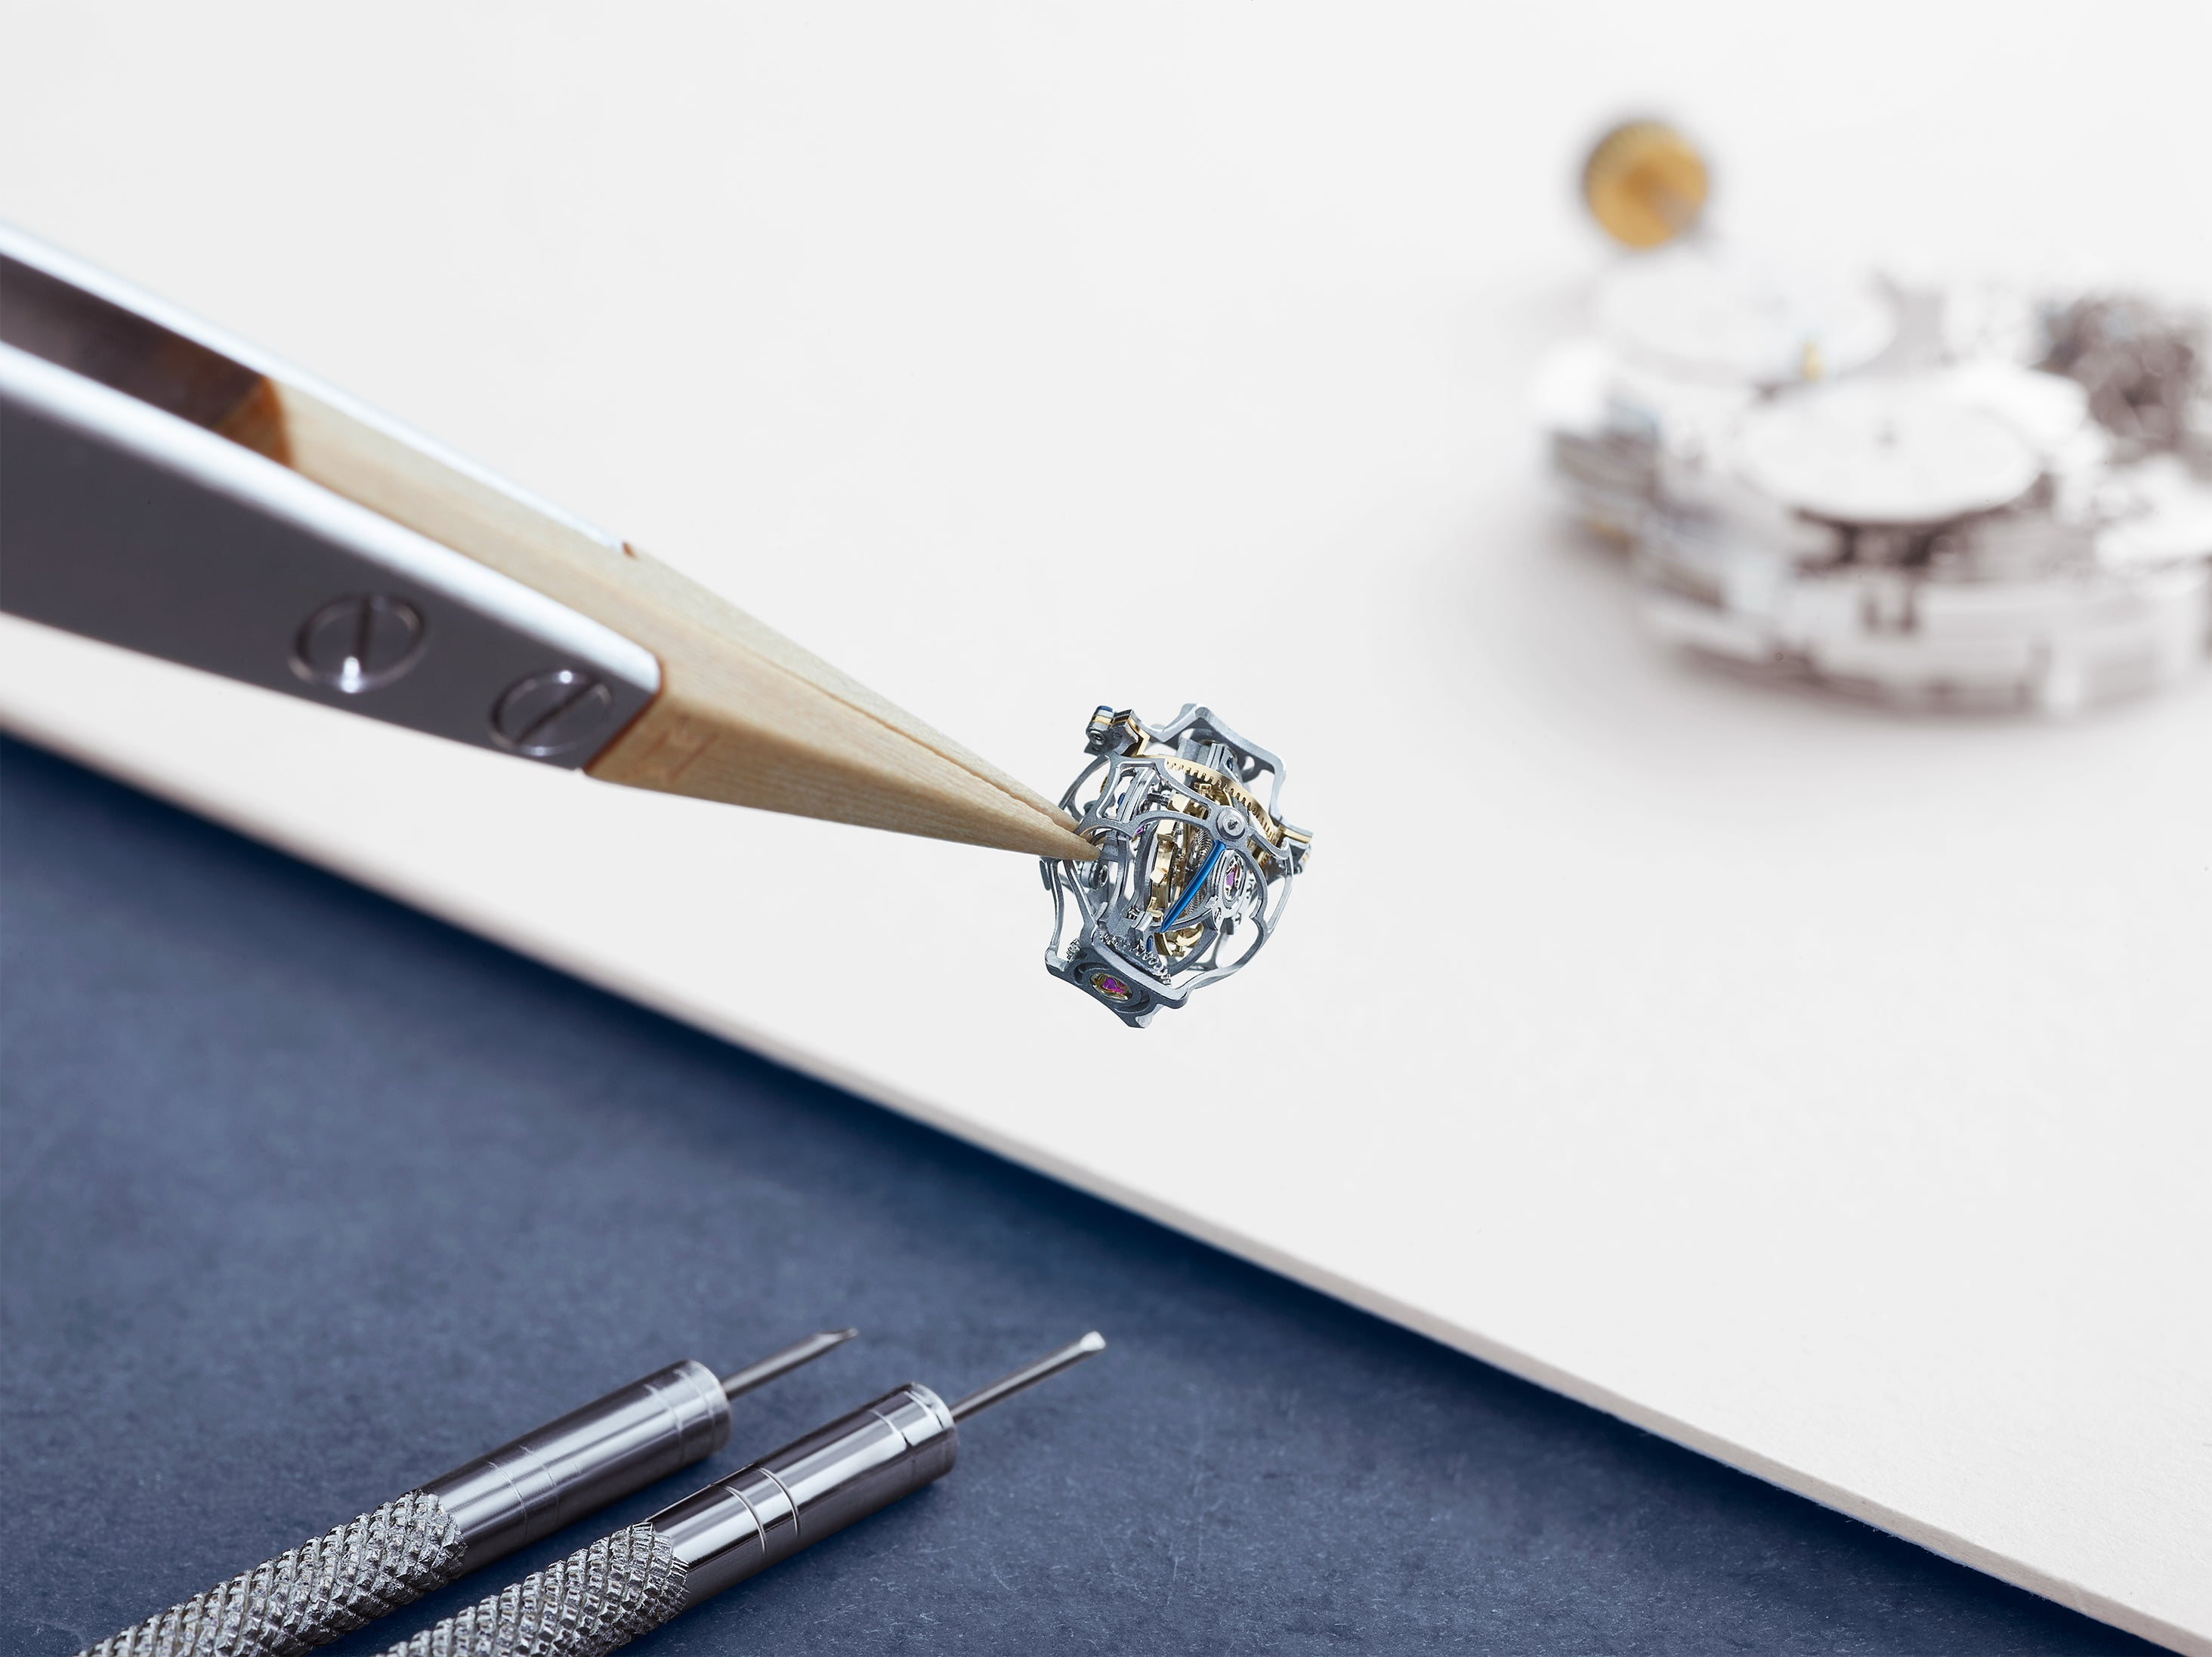 Jaeger-LeCoultre Gyrotourbillon watchmaking in times of crisis for A Collected Man London